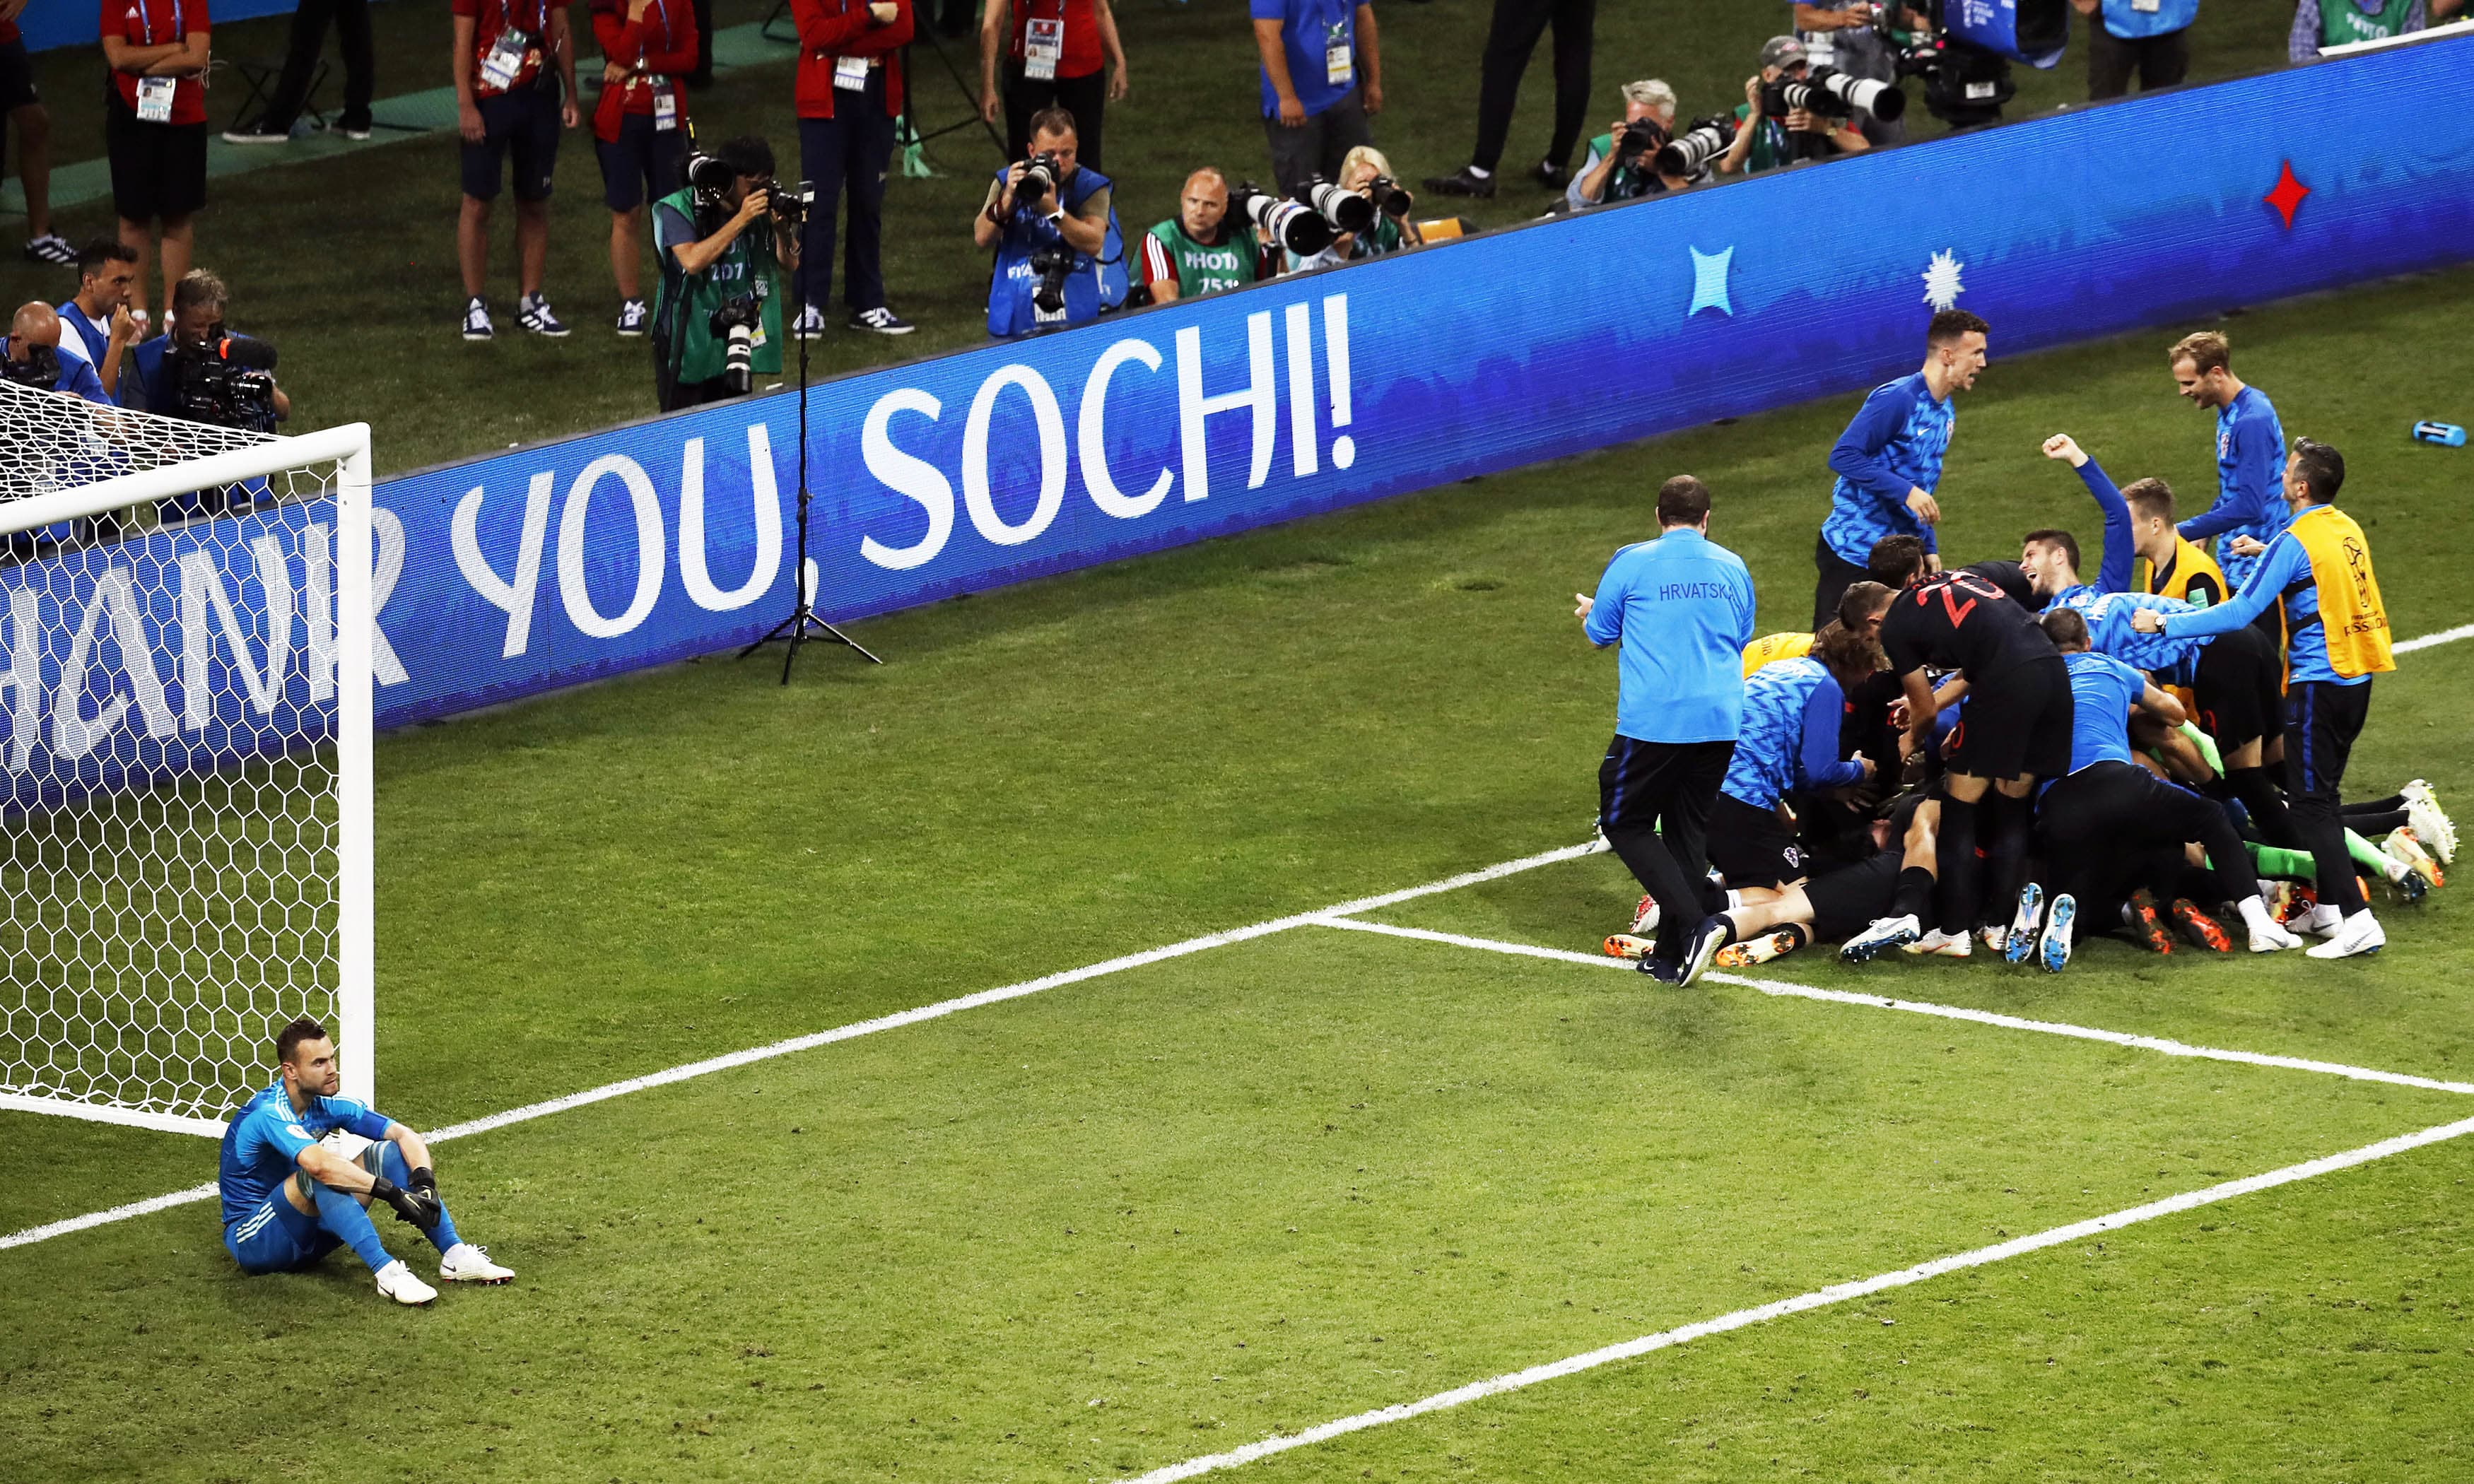 Russia goalkeeper Igor Akinfeev reacts as Croatia players celebrate after scoring the winning penalty during the quarterfinal match. —AP